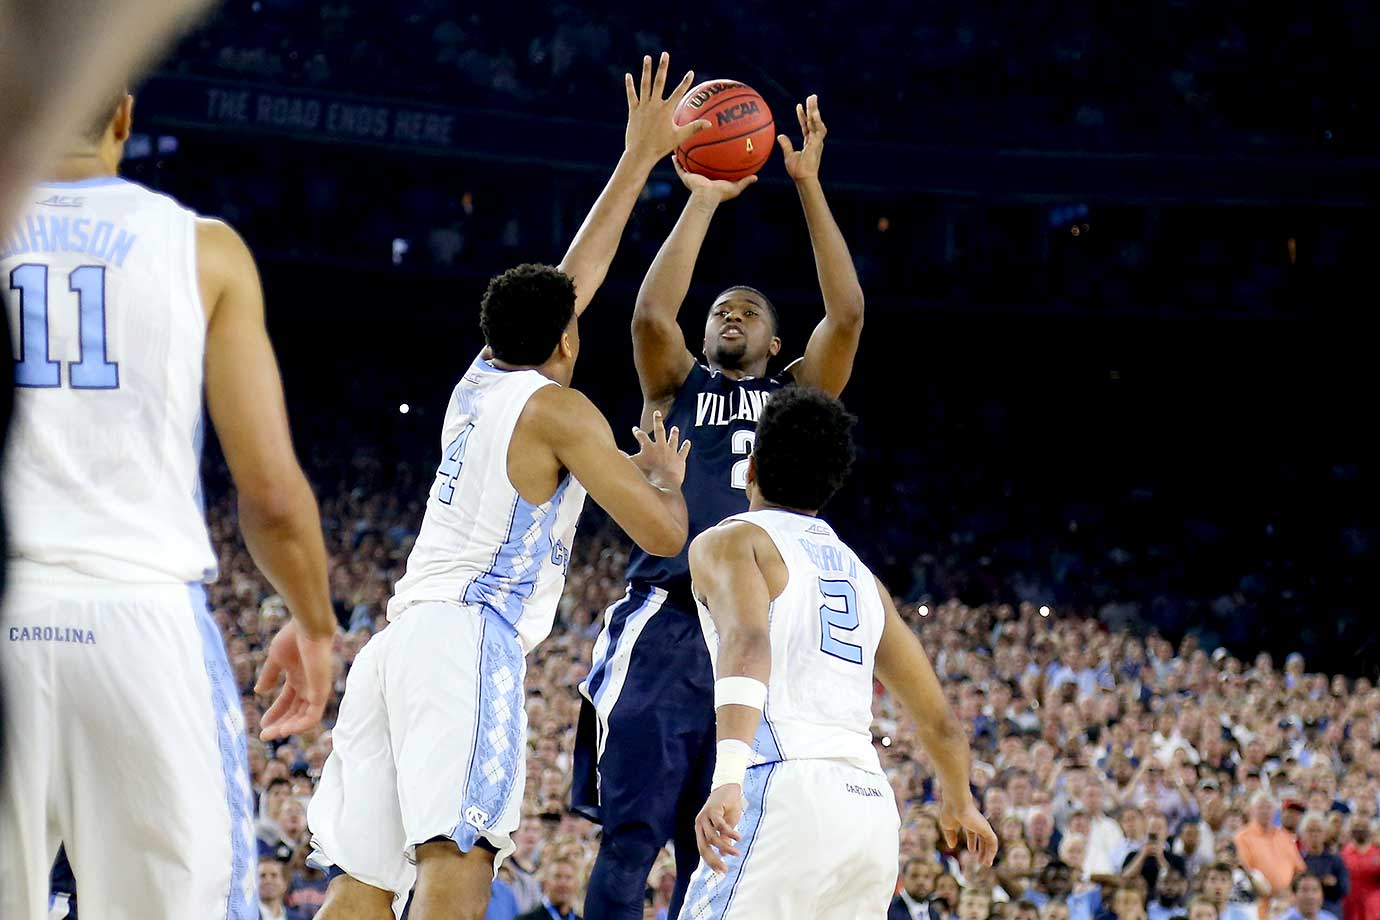 Kris Jenkins said after the game that he thinks all of his shots are going in and that this one was no different.